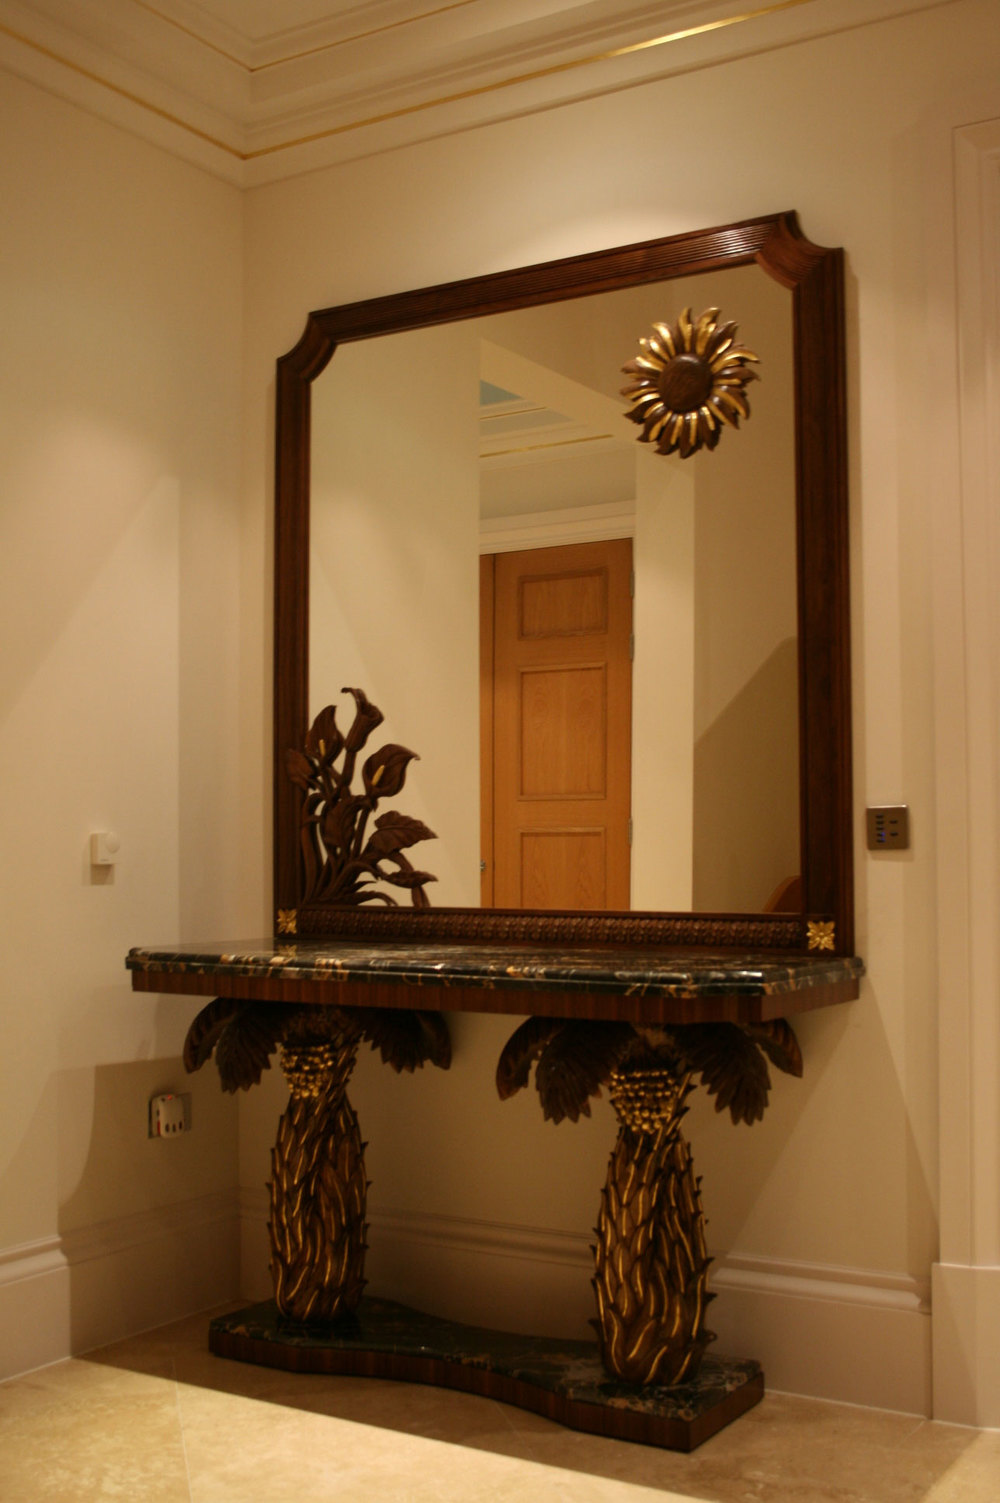 7-Date-palm-console-table-with-mirror2.jpg